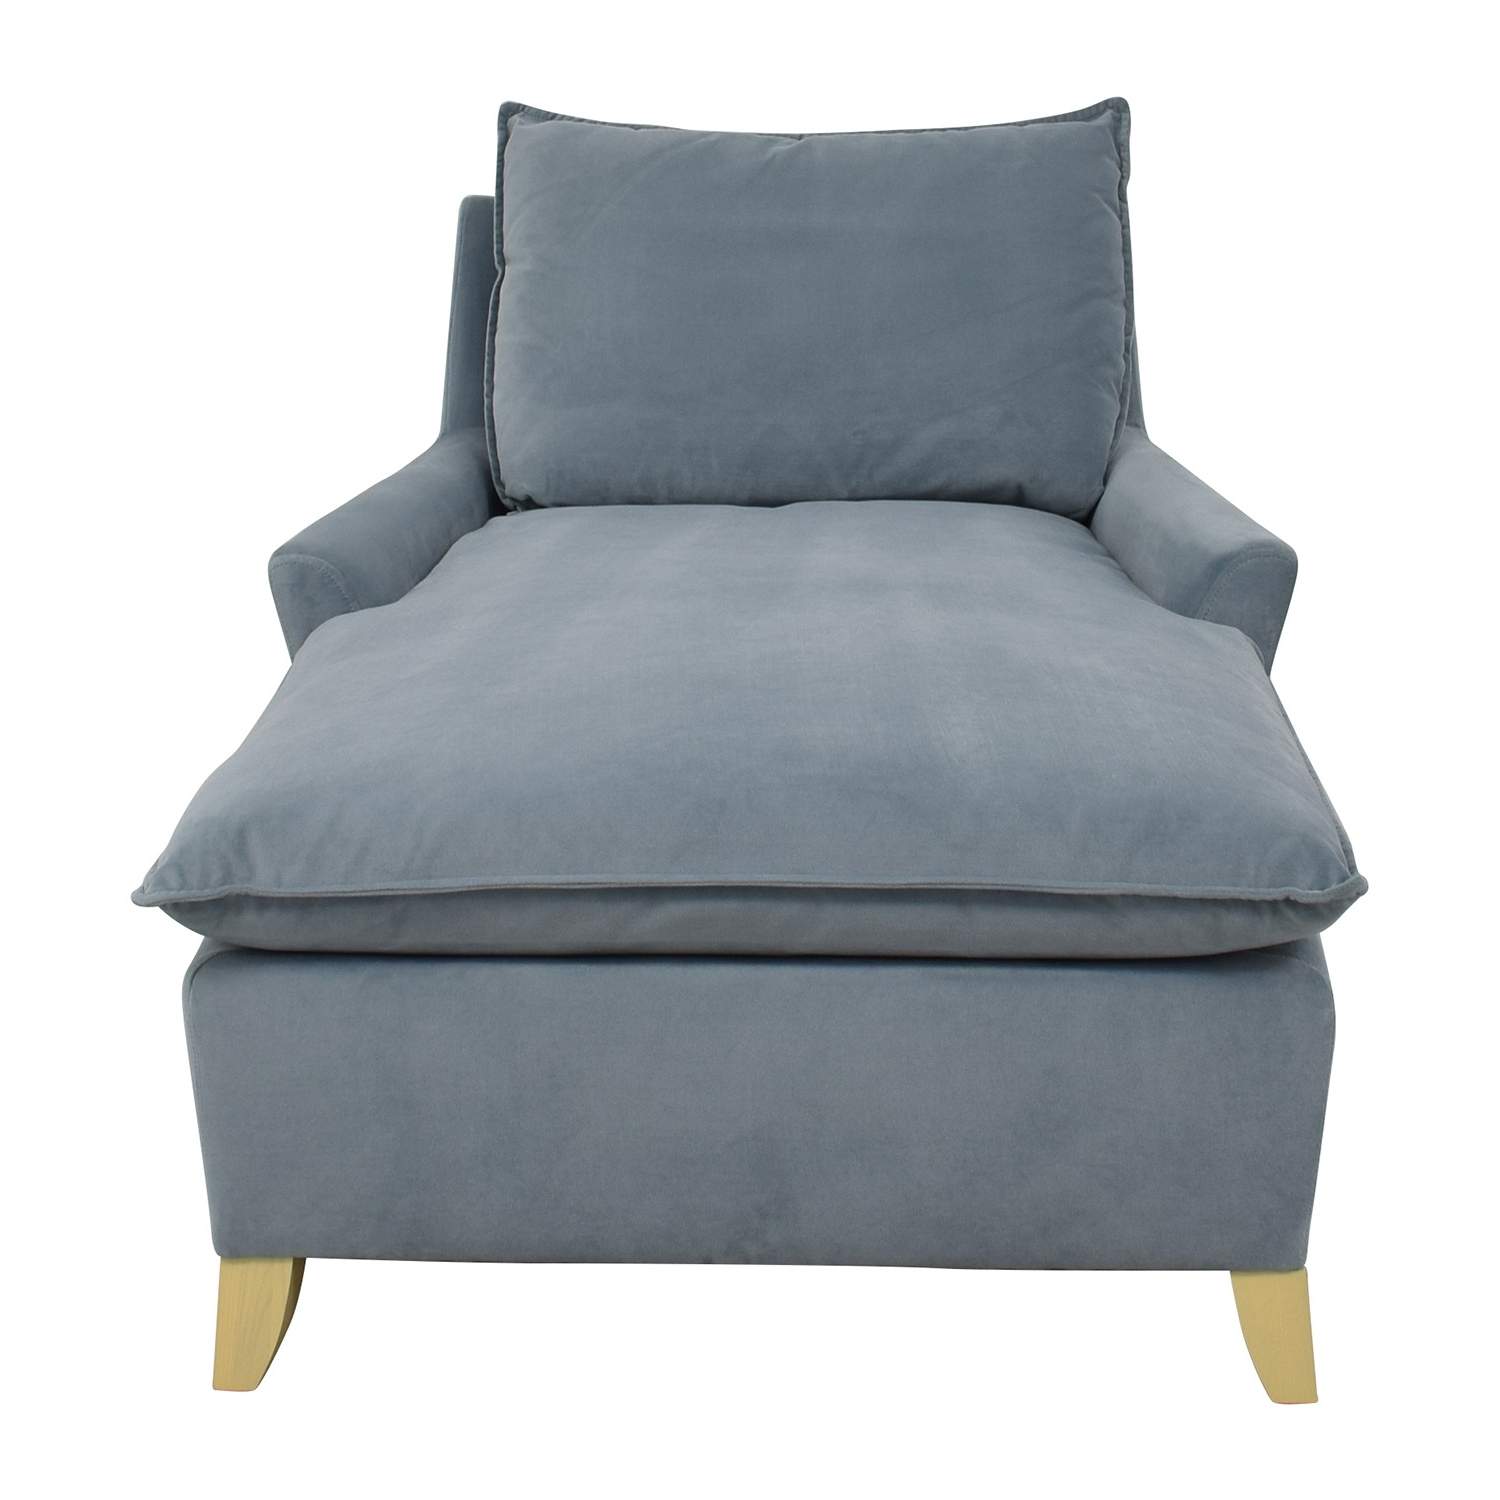 [%72% Off – West Elm West Elm Bliss Steel Blue Velvet Lounge Chaise Inside Most Current West Elm Chaises|West Elm Chaises Pertaining To Best And Newest 72% Off – West Elm West Elm Bliss Steel Blue Velvet Lounge Chaise|Well Liked West Elm Chaises Inside 72% Off – West Elm West Elm Bliss Steel Blue Velvet Lounge Chaise|Best And Newest 72% Off – West Elm West Elm Bliss Steel Blue Velvet Lounge Chaise Within West Elm Chaises%] (View 1 of 15)